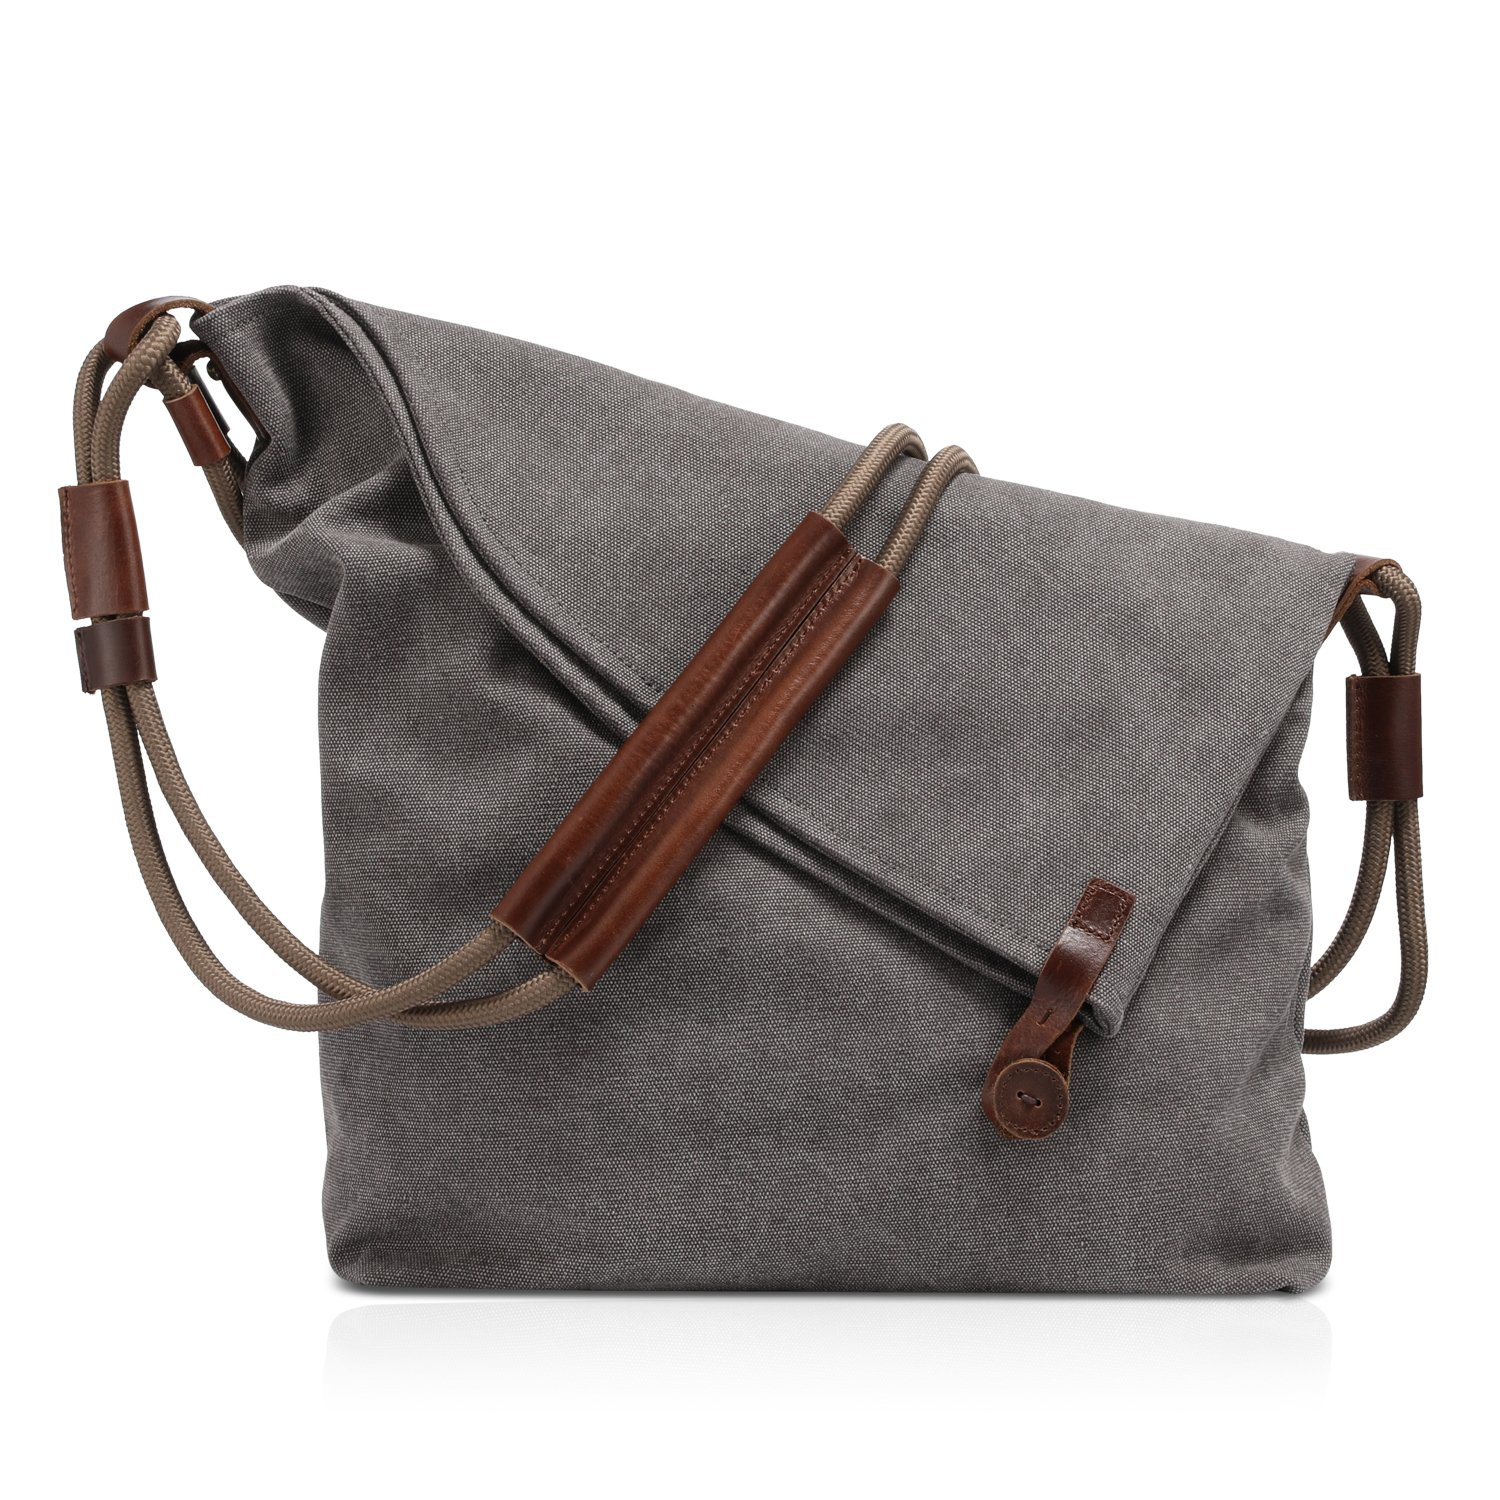 Plambag Canvas Crossbody Shoulder Bag, Leather Trim Hobo Purse Messenger Bag Grey